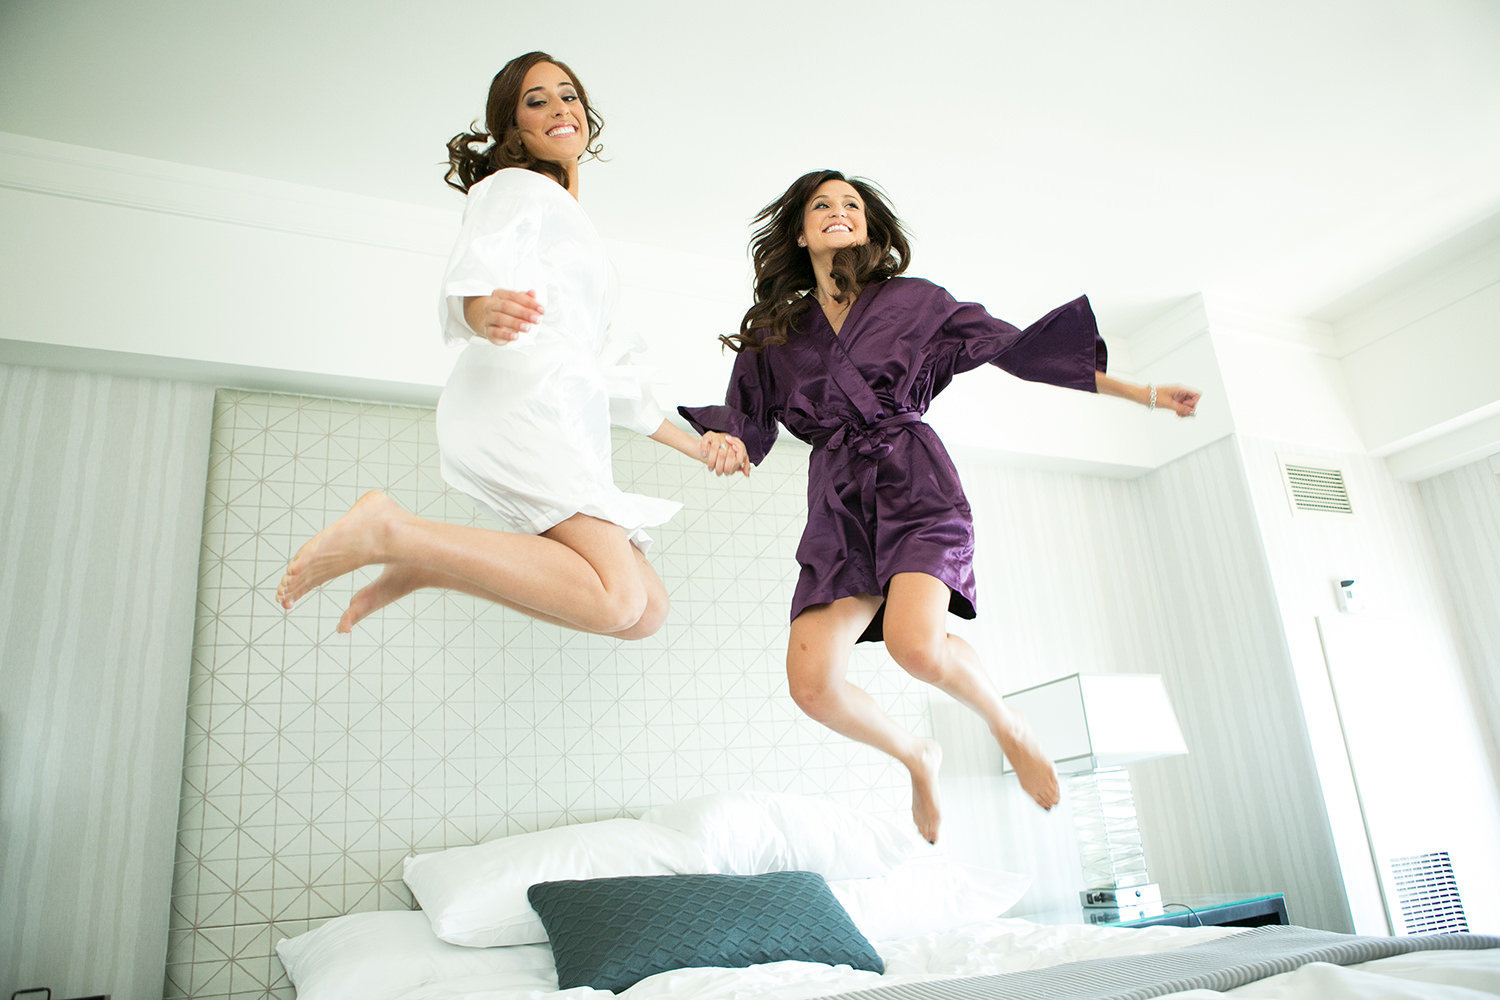 Bride jumping on the bed before she is wed